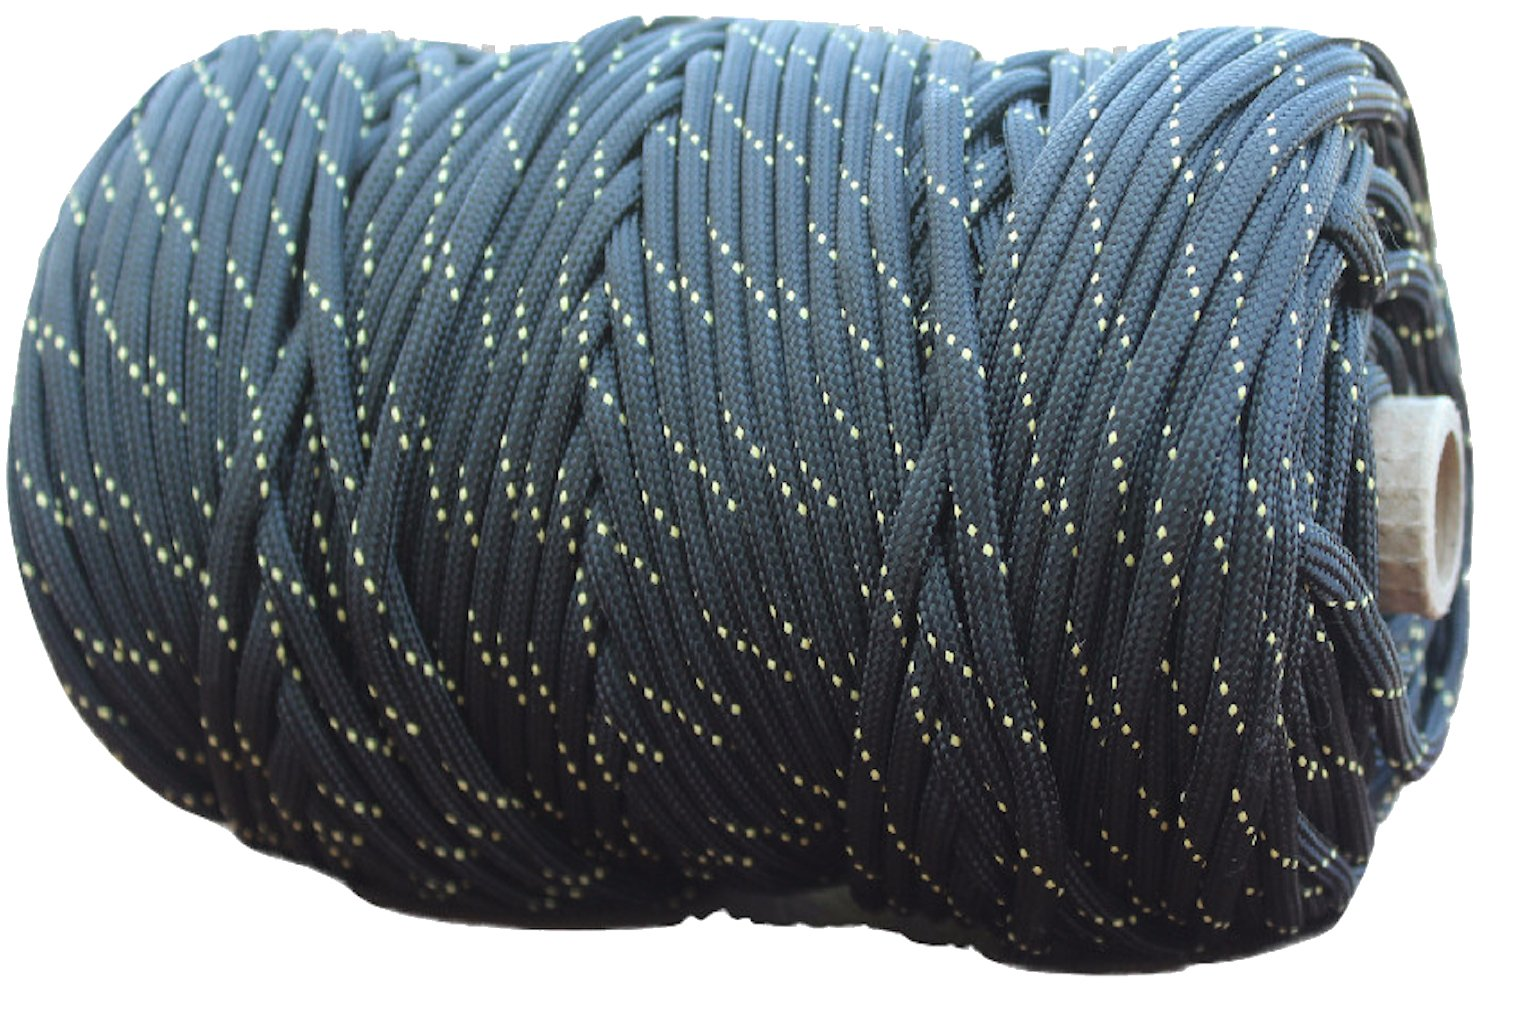 X-CORDS Paracord 850 Lb Stronger Than 550 and 750 Made by Us Government Certified Contractor (200' Black Diamond Kevlar Tube) by X-CORDS